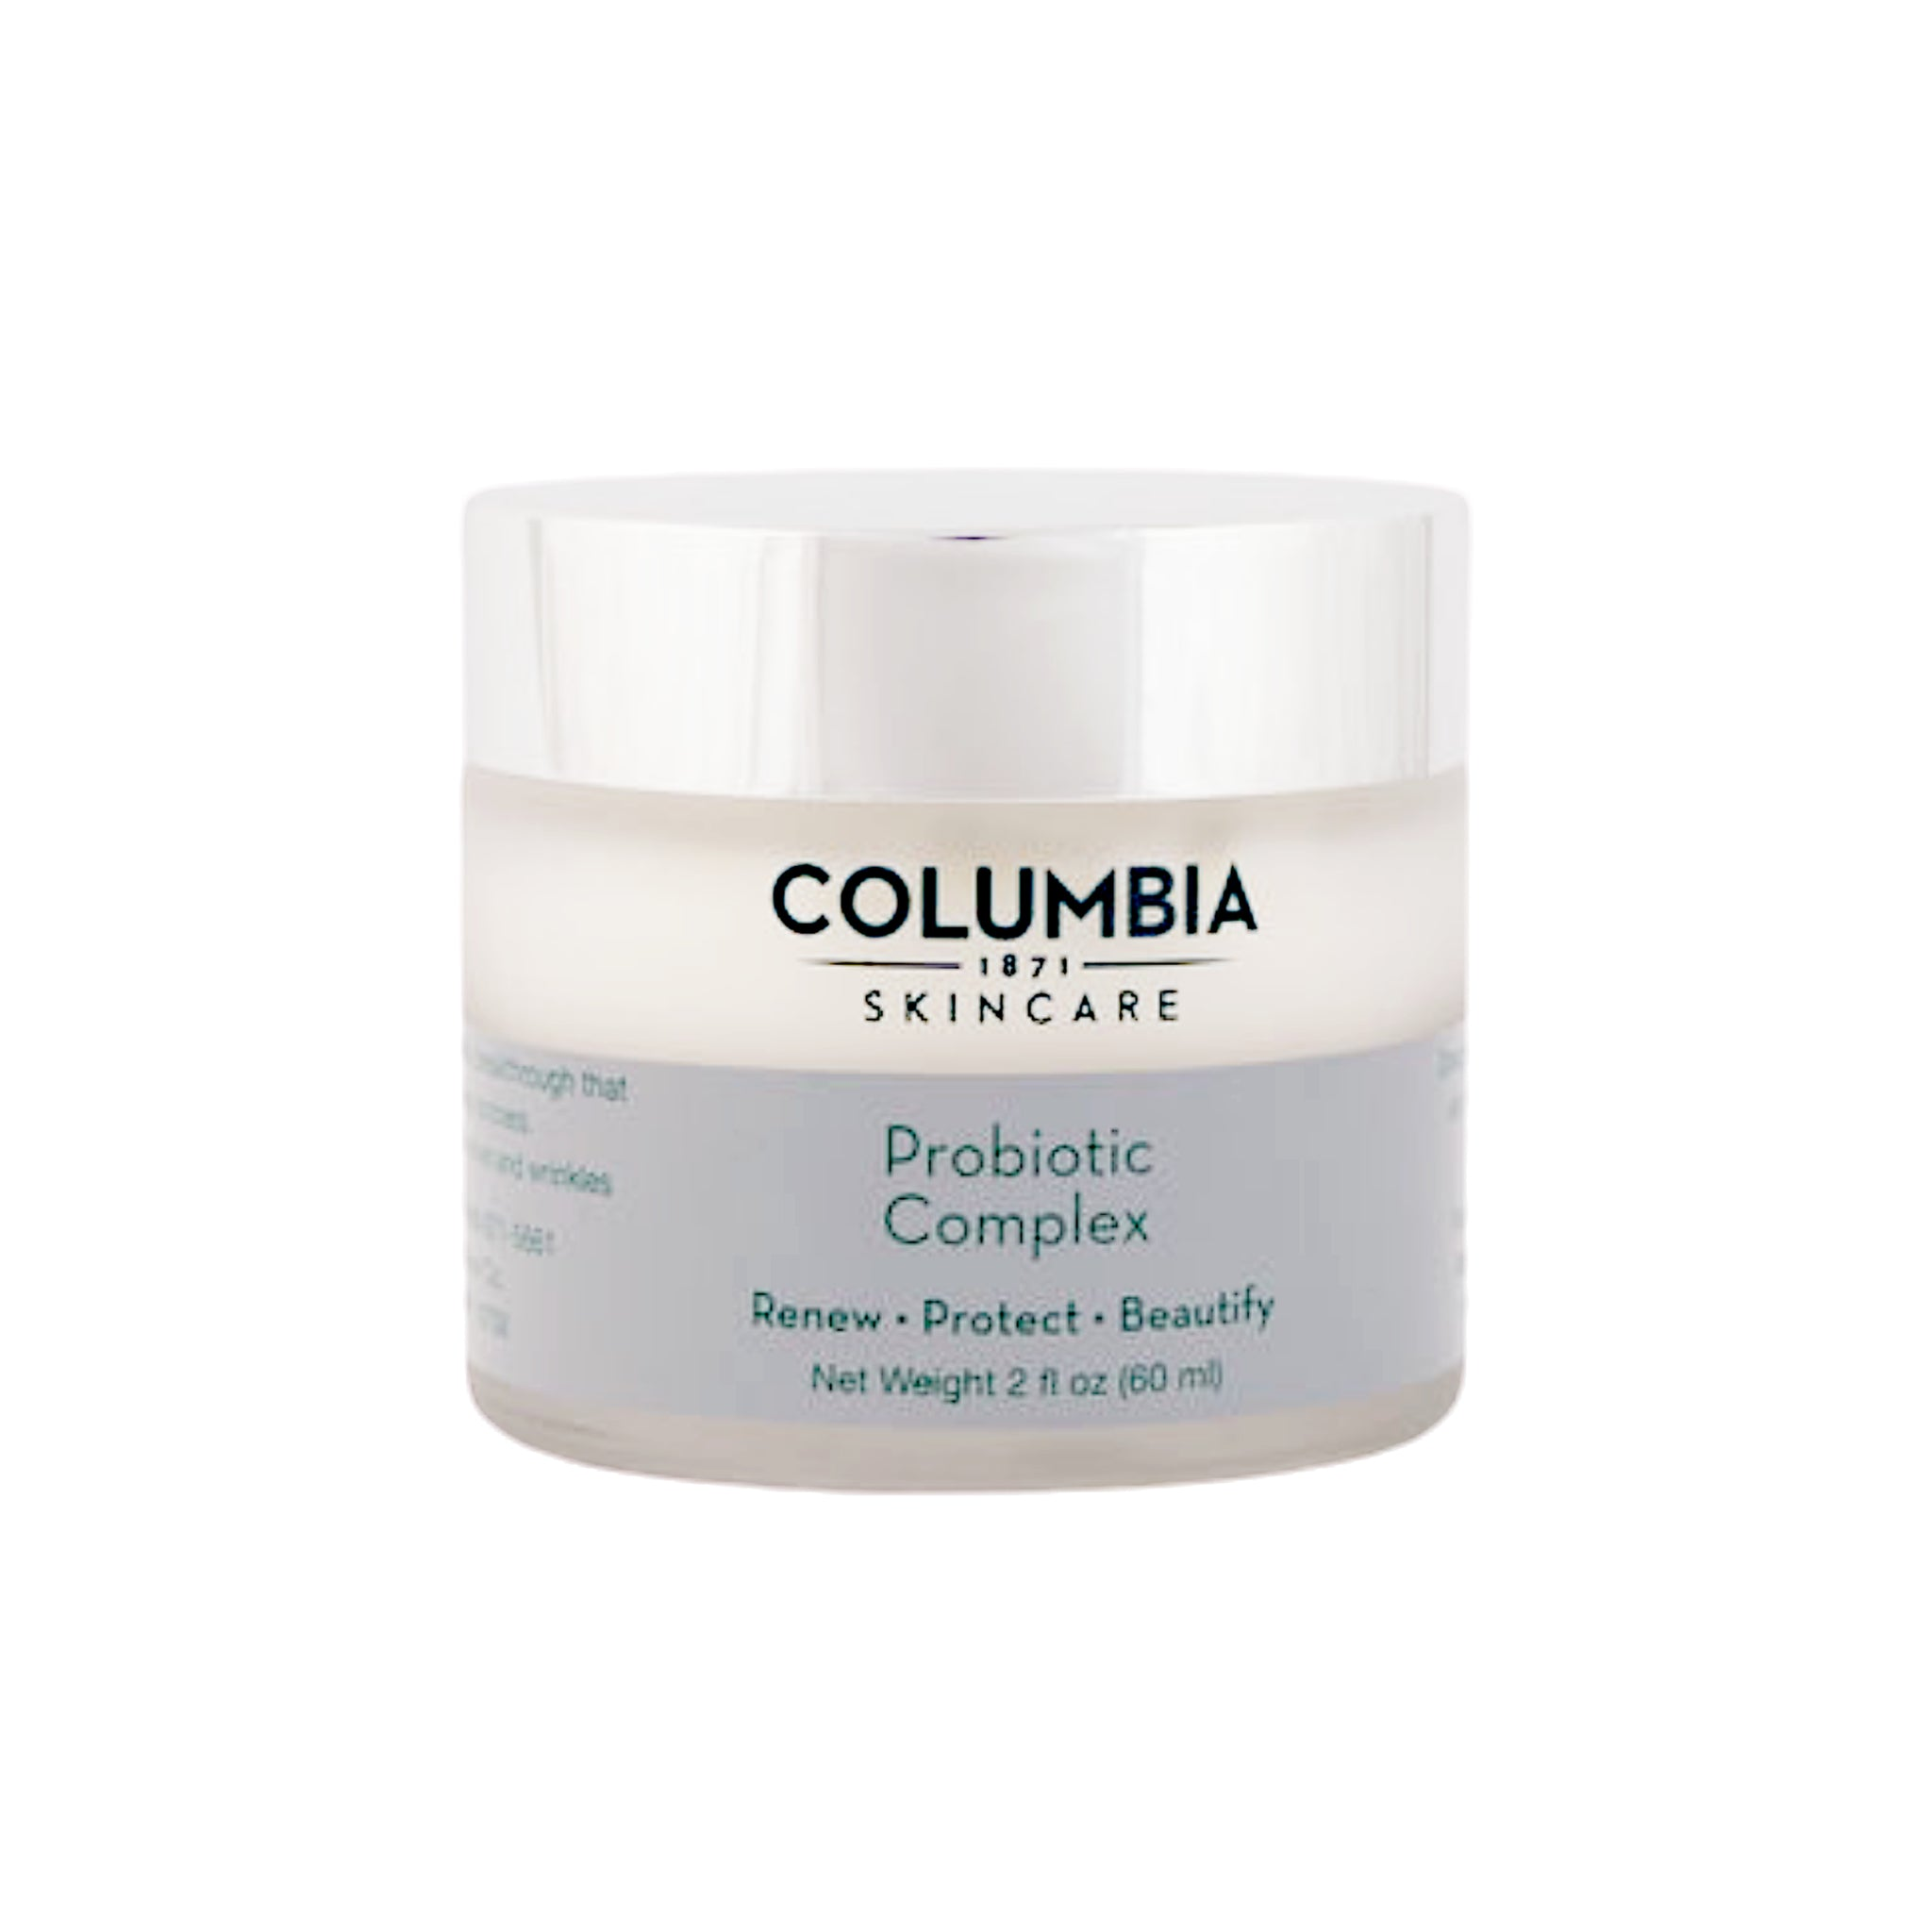 COLUMBIA SKINCARE - Probiotic Complex - Beauty Nook